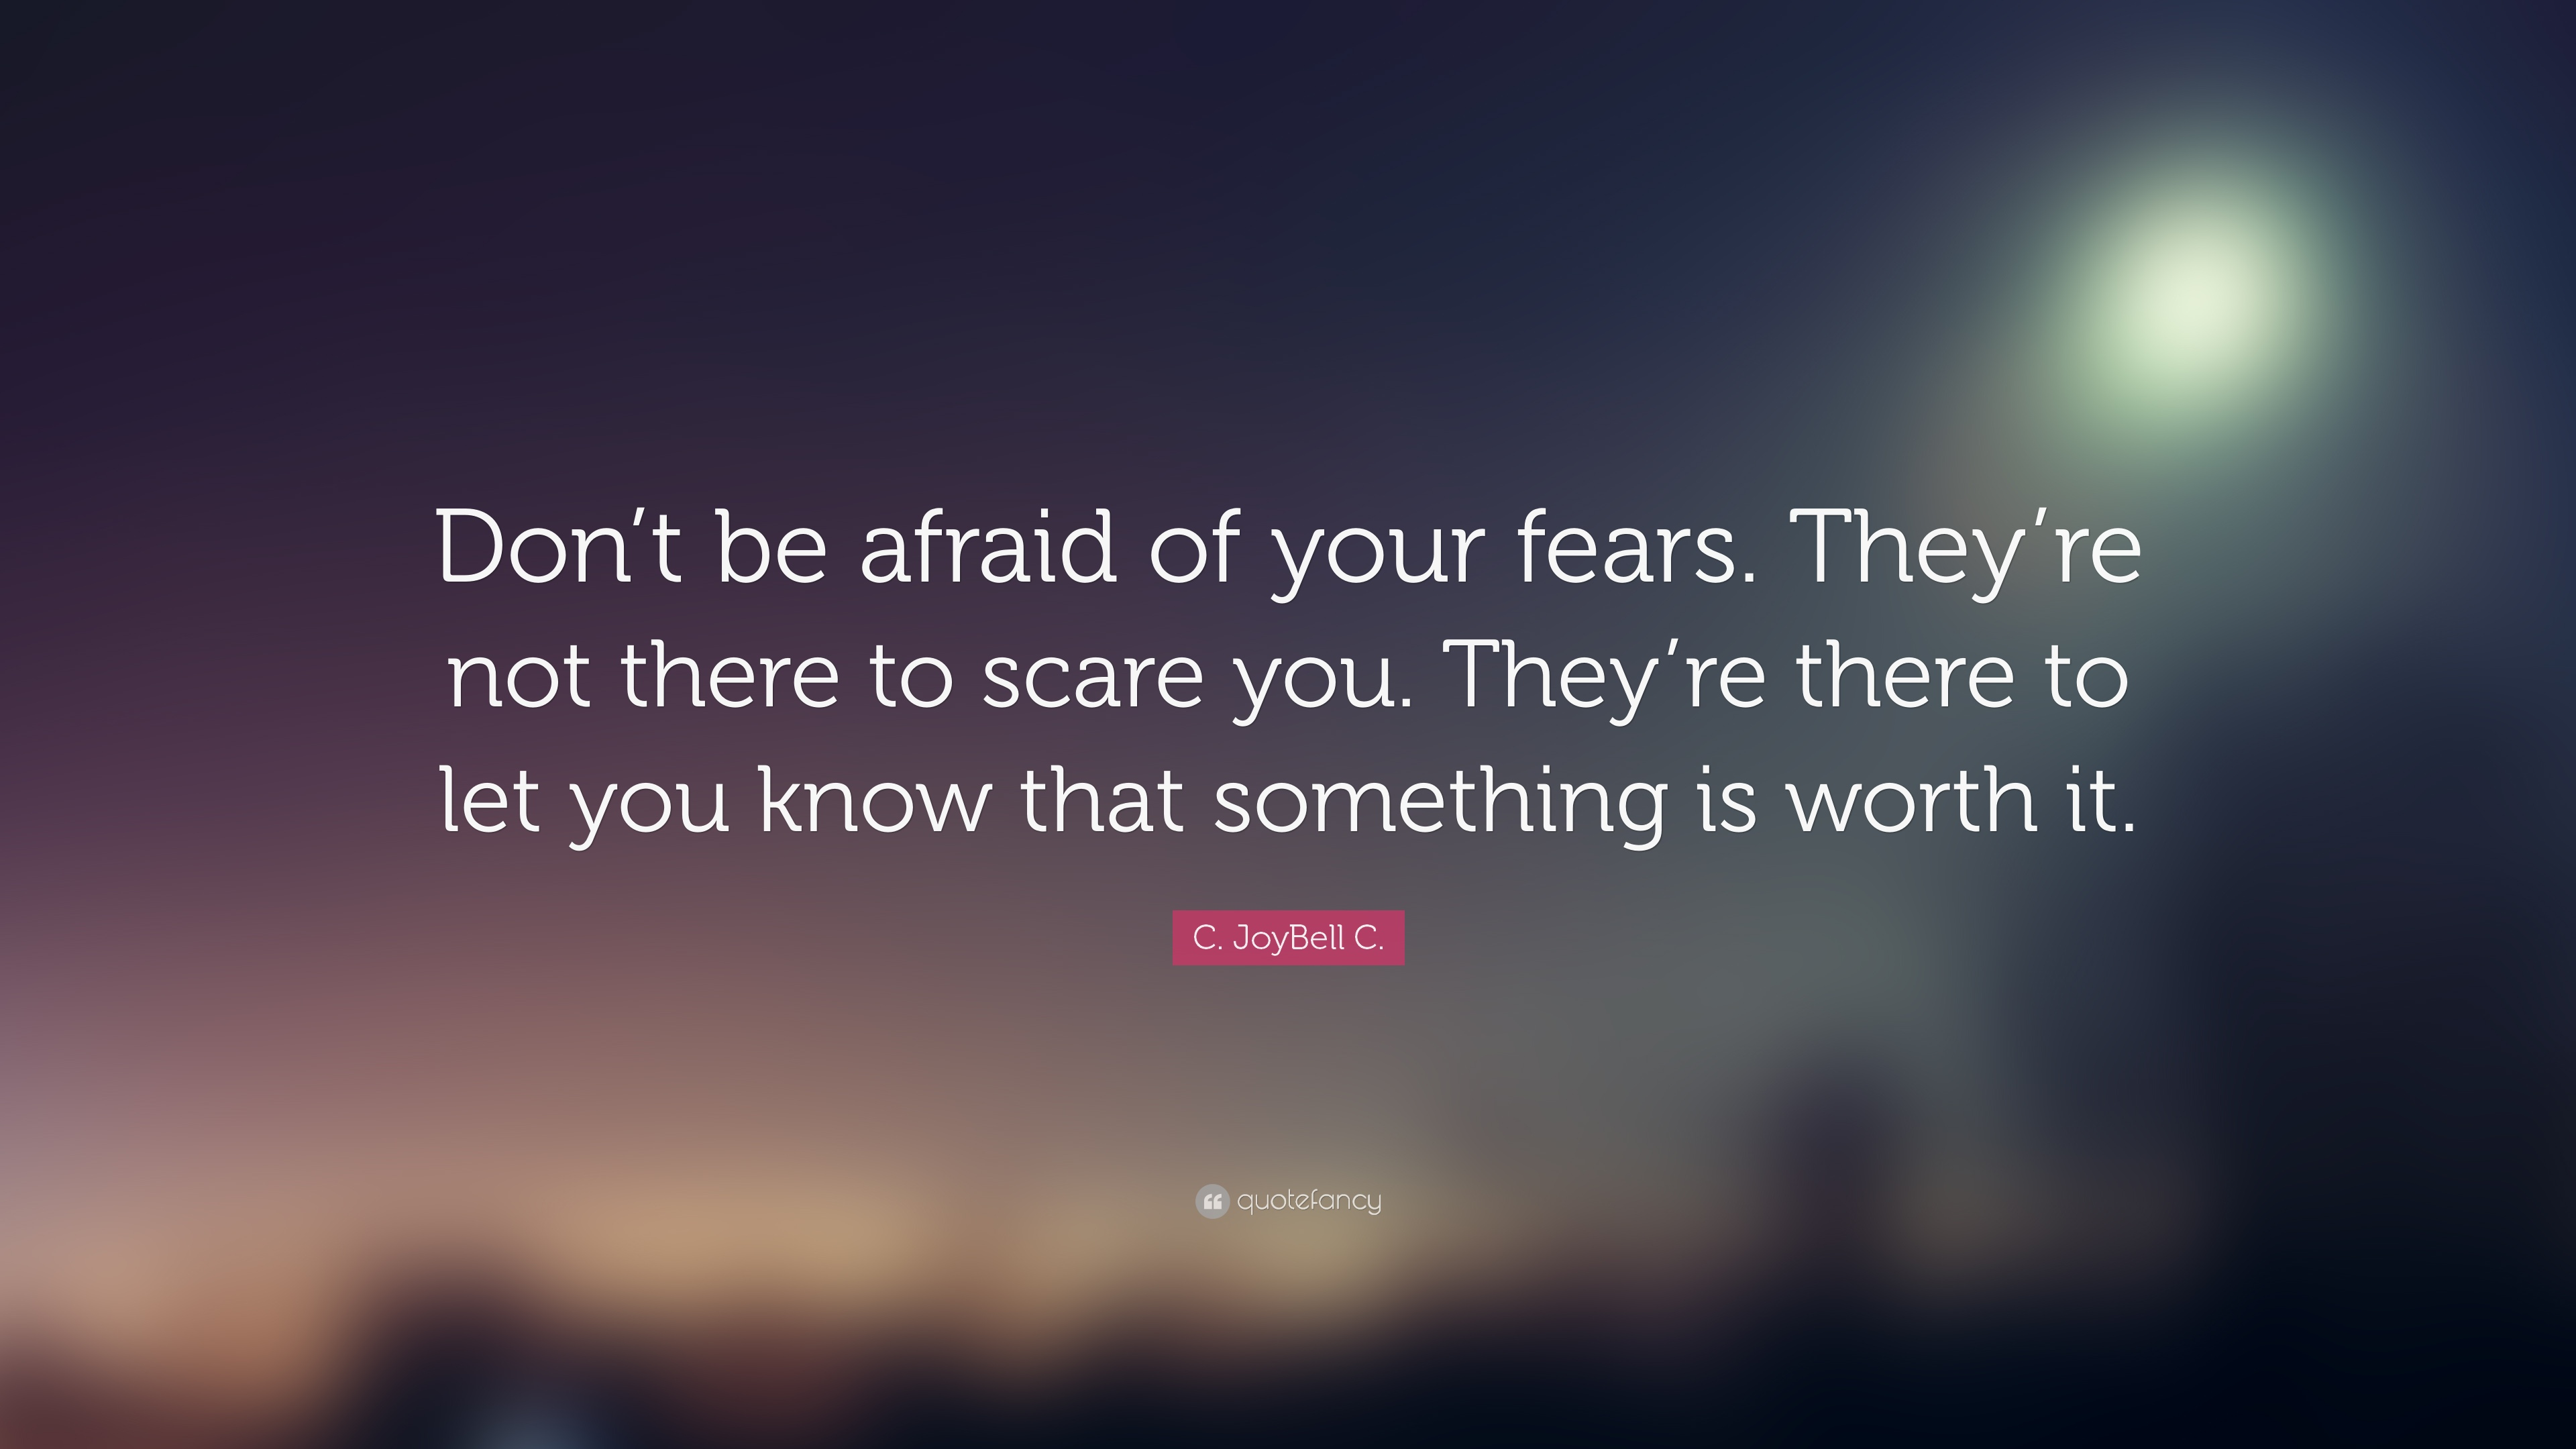 C. JoyBell C. Quote: U201cDonu0027t Be Afraid Of Your Fears